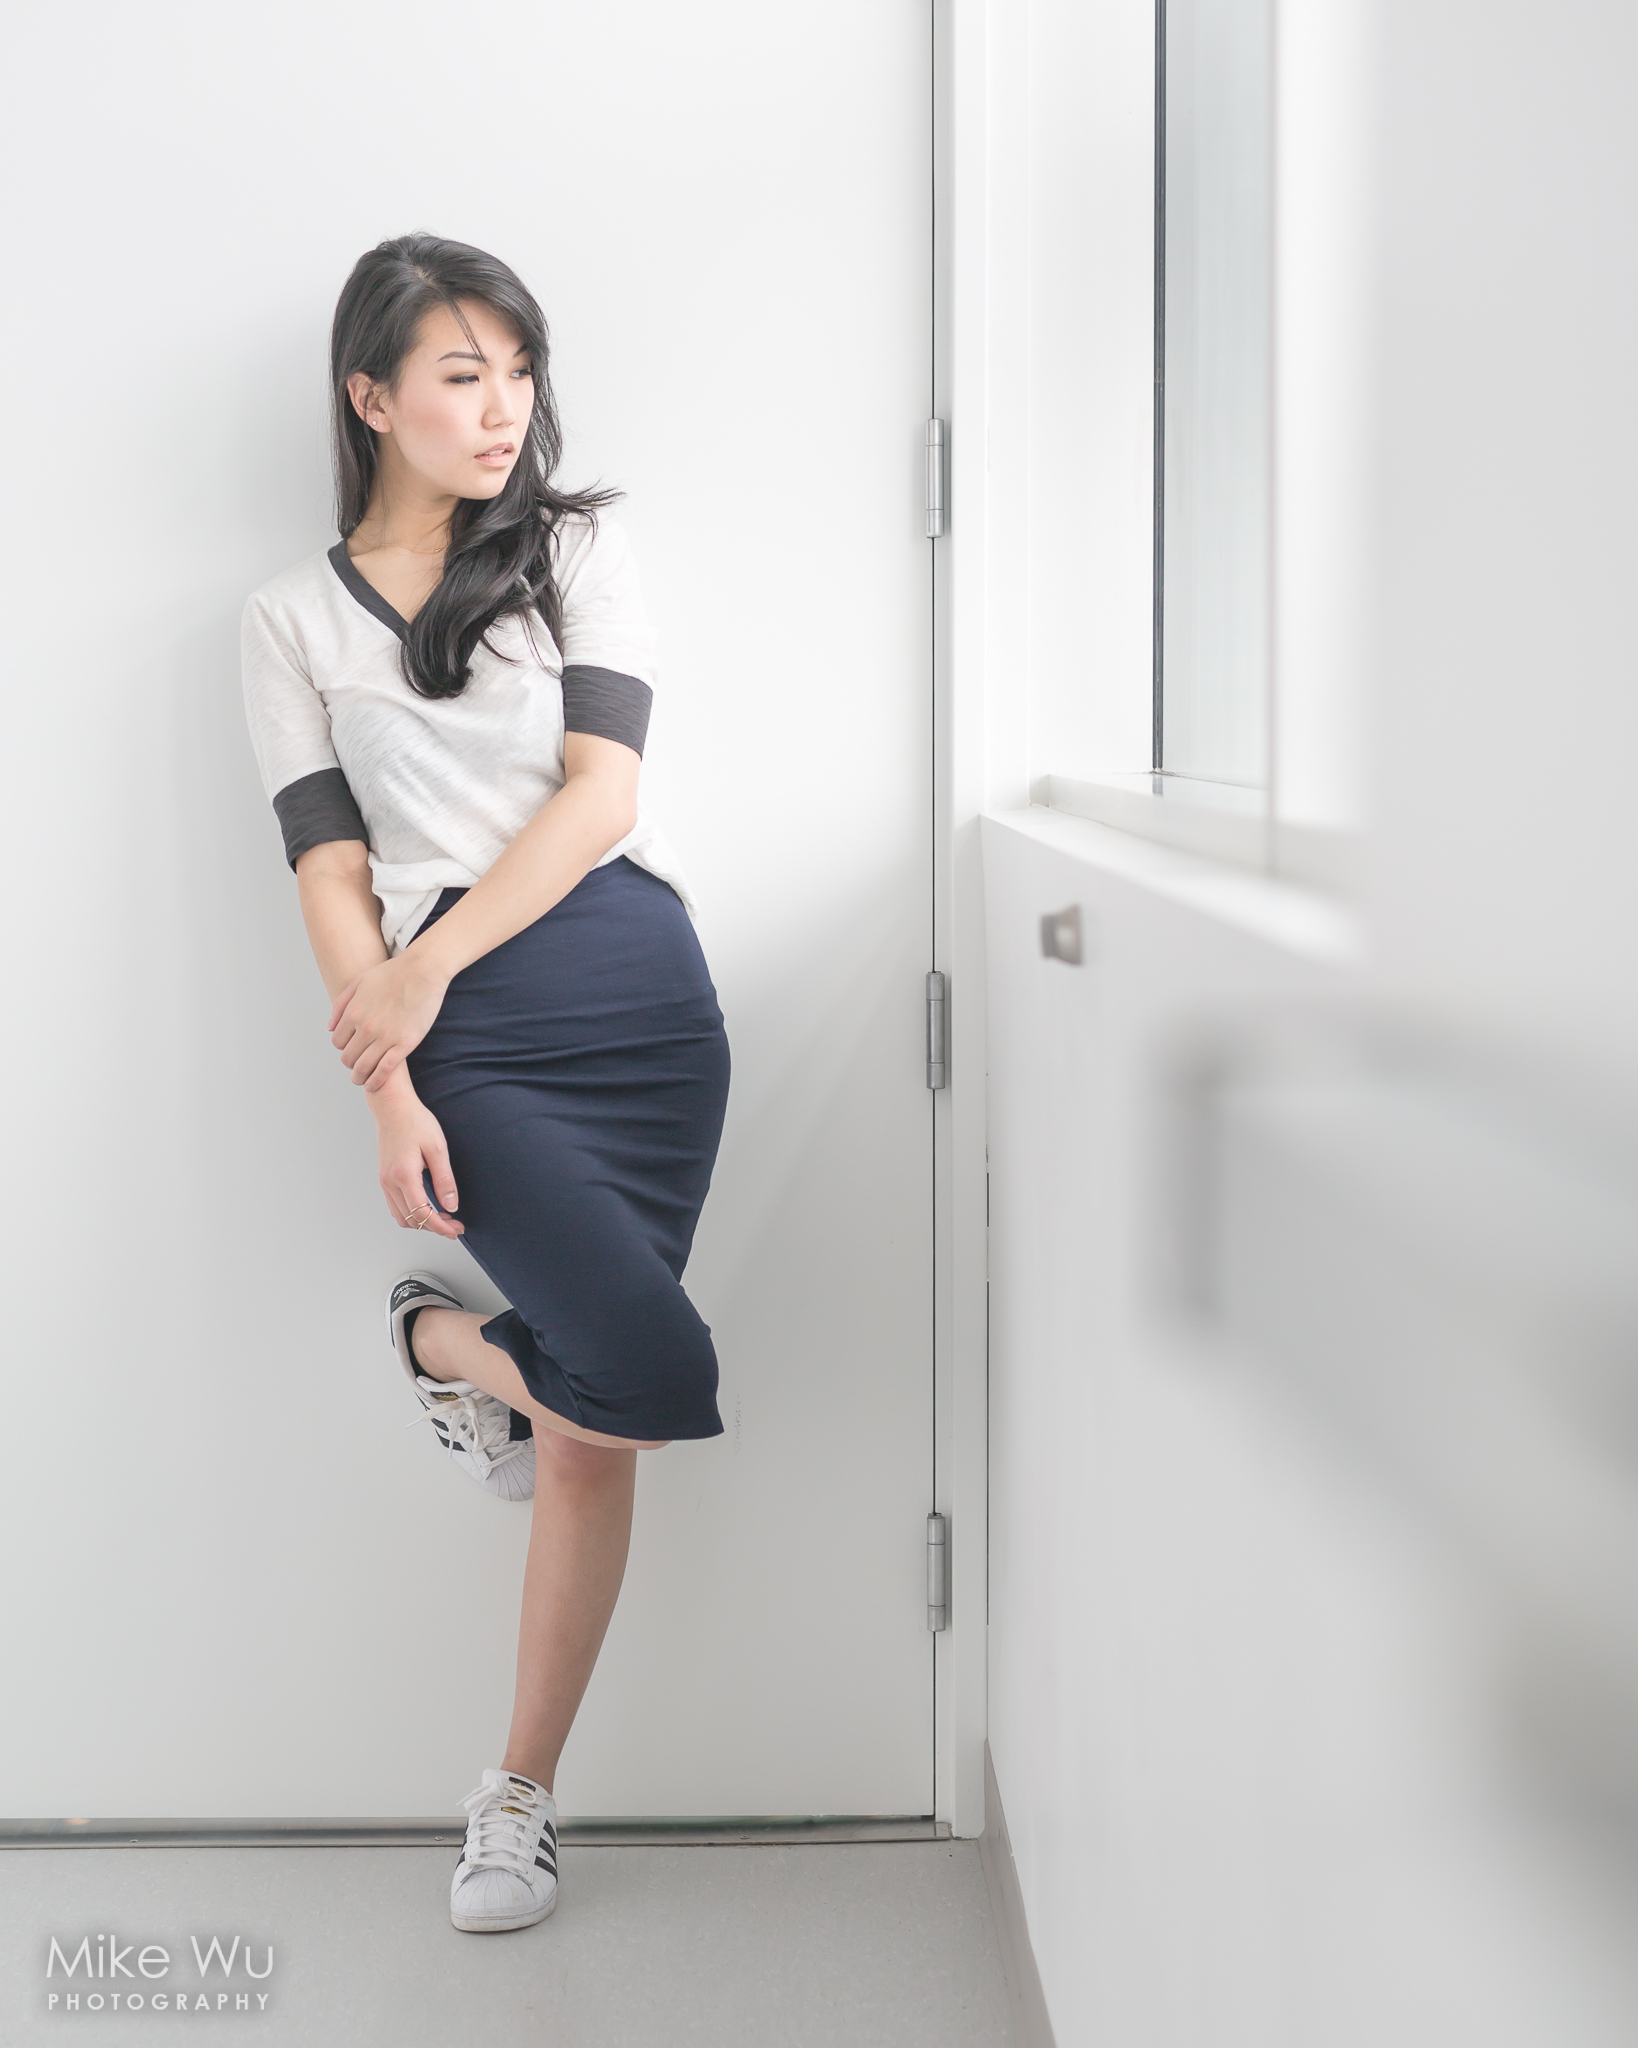 vancouver, photoshoot, indoors, window, skirt, navy blue, curly hair, asian, beauty, door, adidas